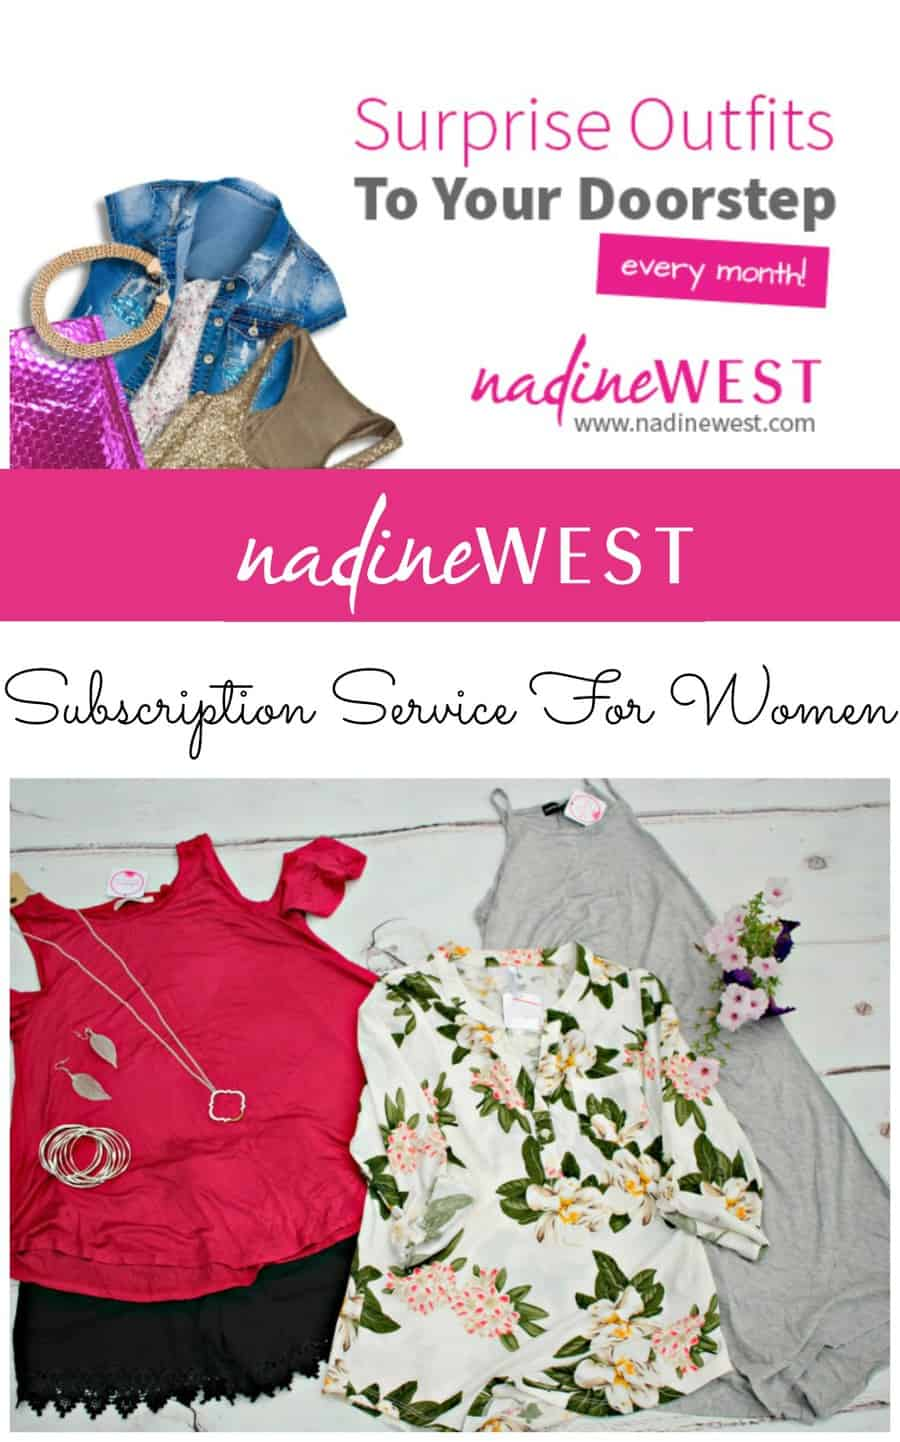 Nadine West Subscription Service For Women - Accessories & Clothing Box